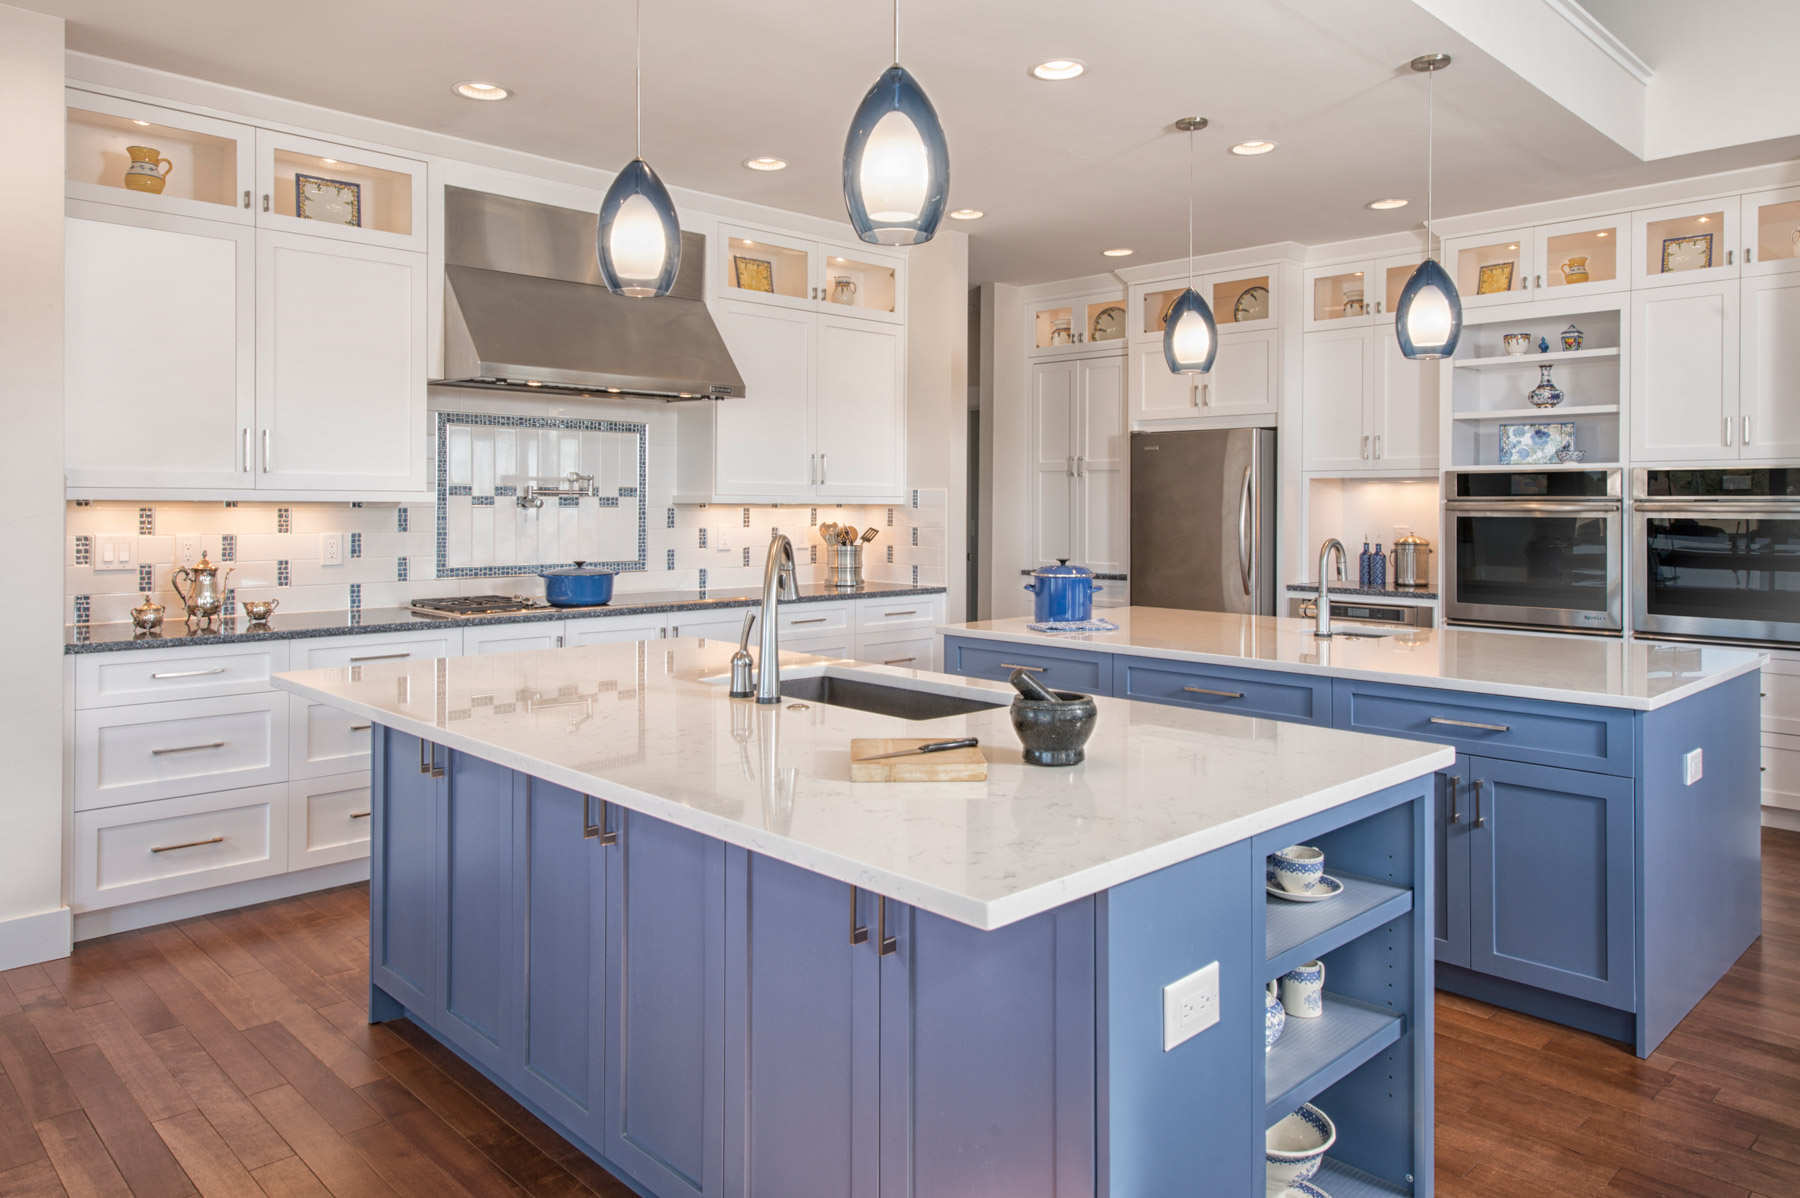 parker-kitchen-designed-by-michelle-ku-at-ku-interior-design-v2-1